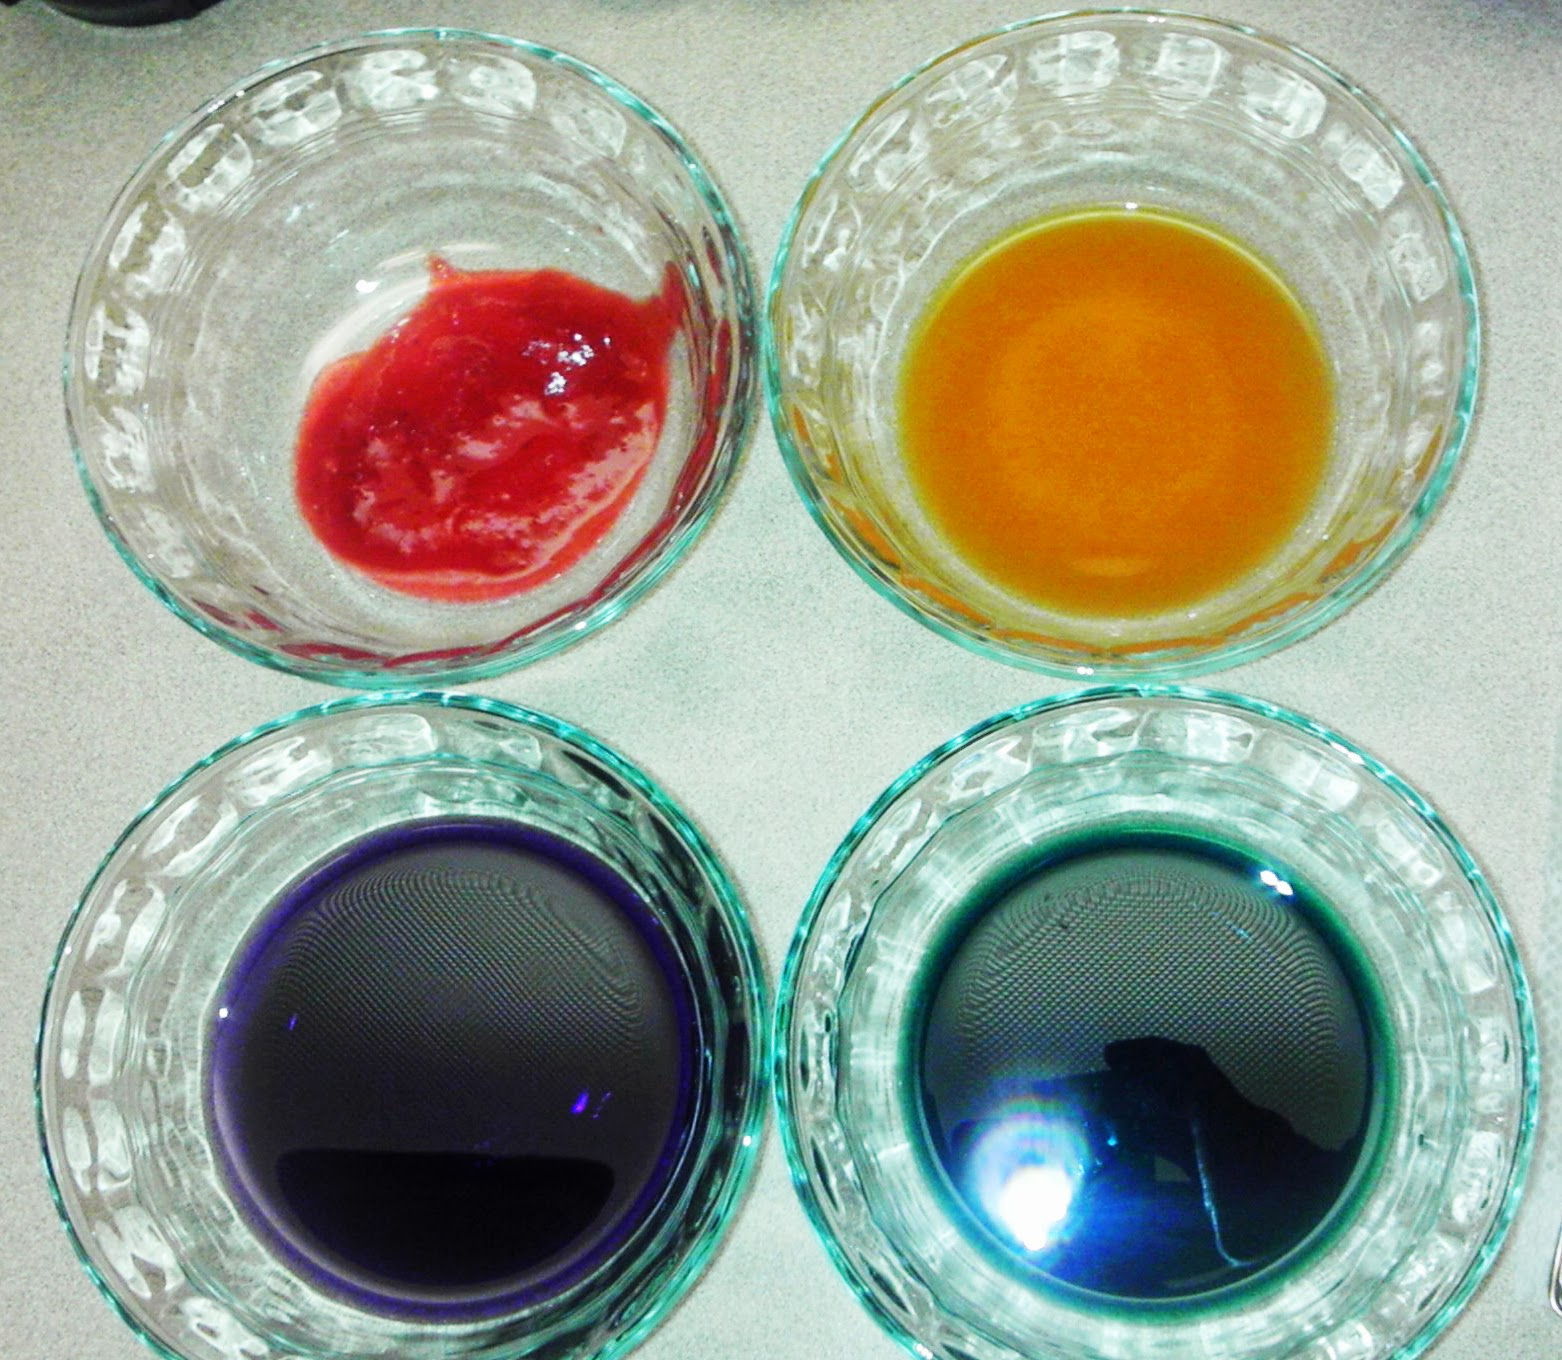 Amazing and Atopic: Natural Food Coloring and Homemade Sprinkles